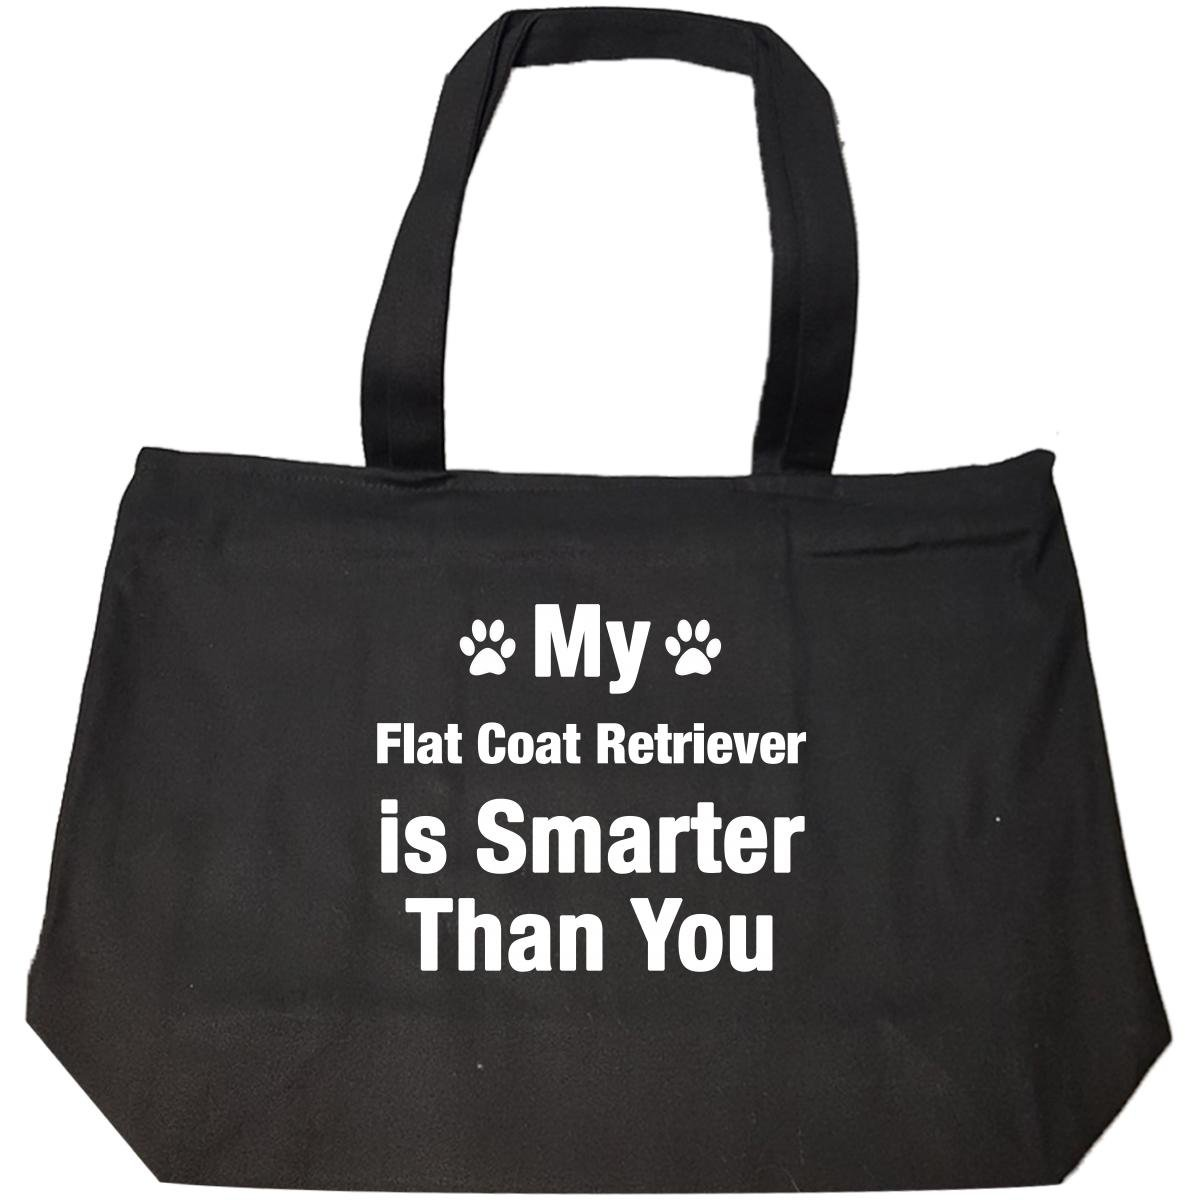 My Flat Coat Retriever Is Smarter Than You Funny Dog Gift - Tote Bag With Zip